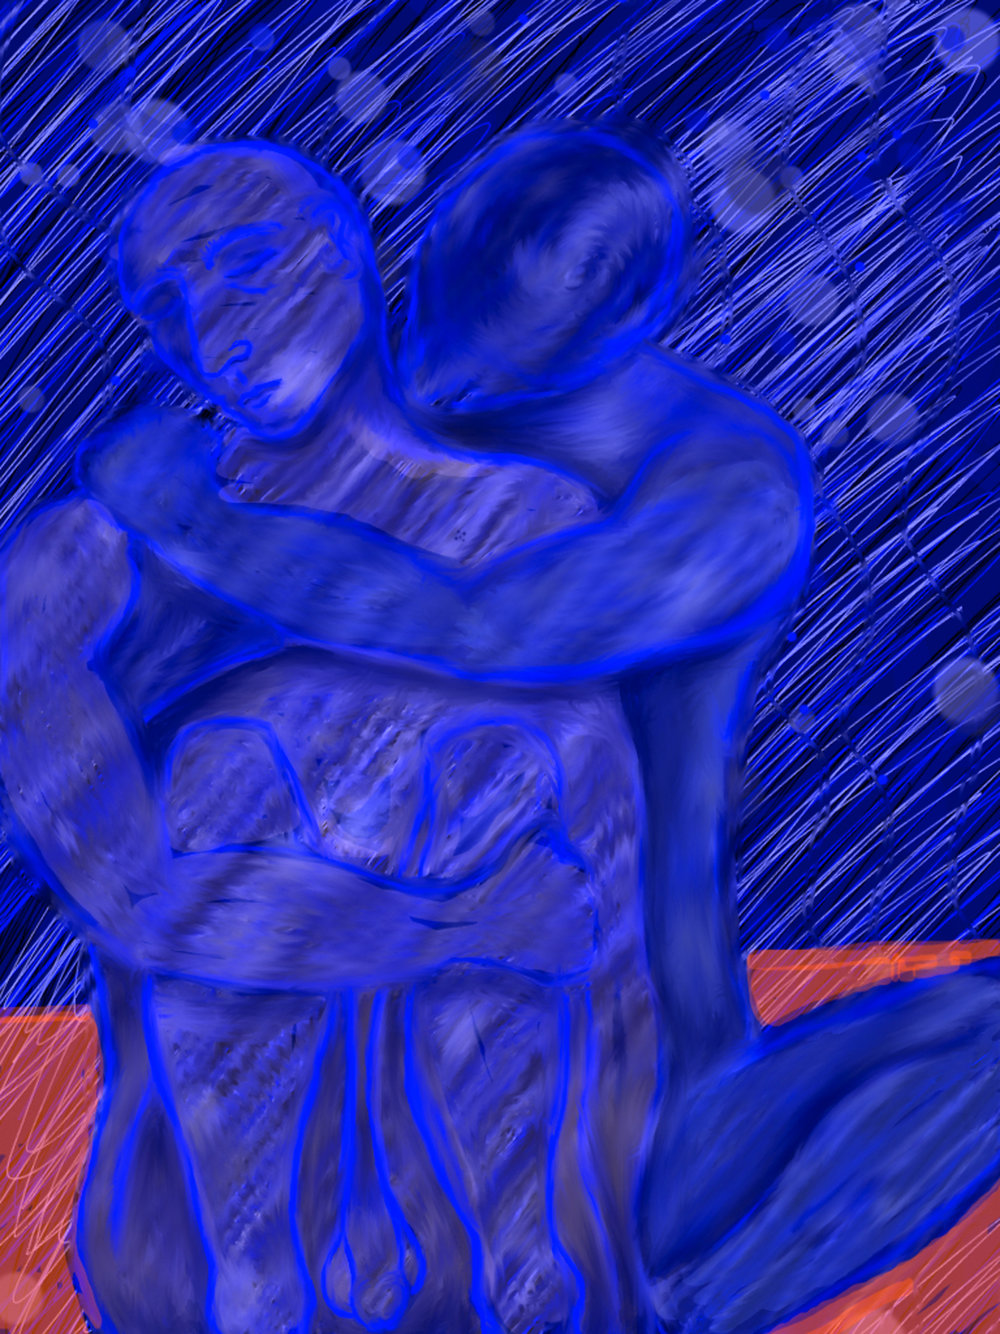 Rain, from Coupling Love is…., The book is available on iBooks. The entire series includes 36 abstract and erotic digital paintings.